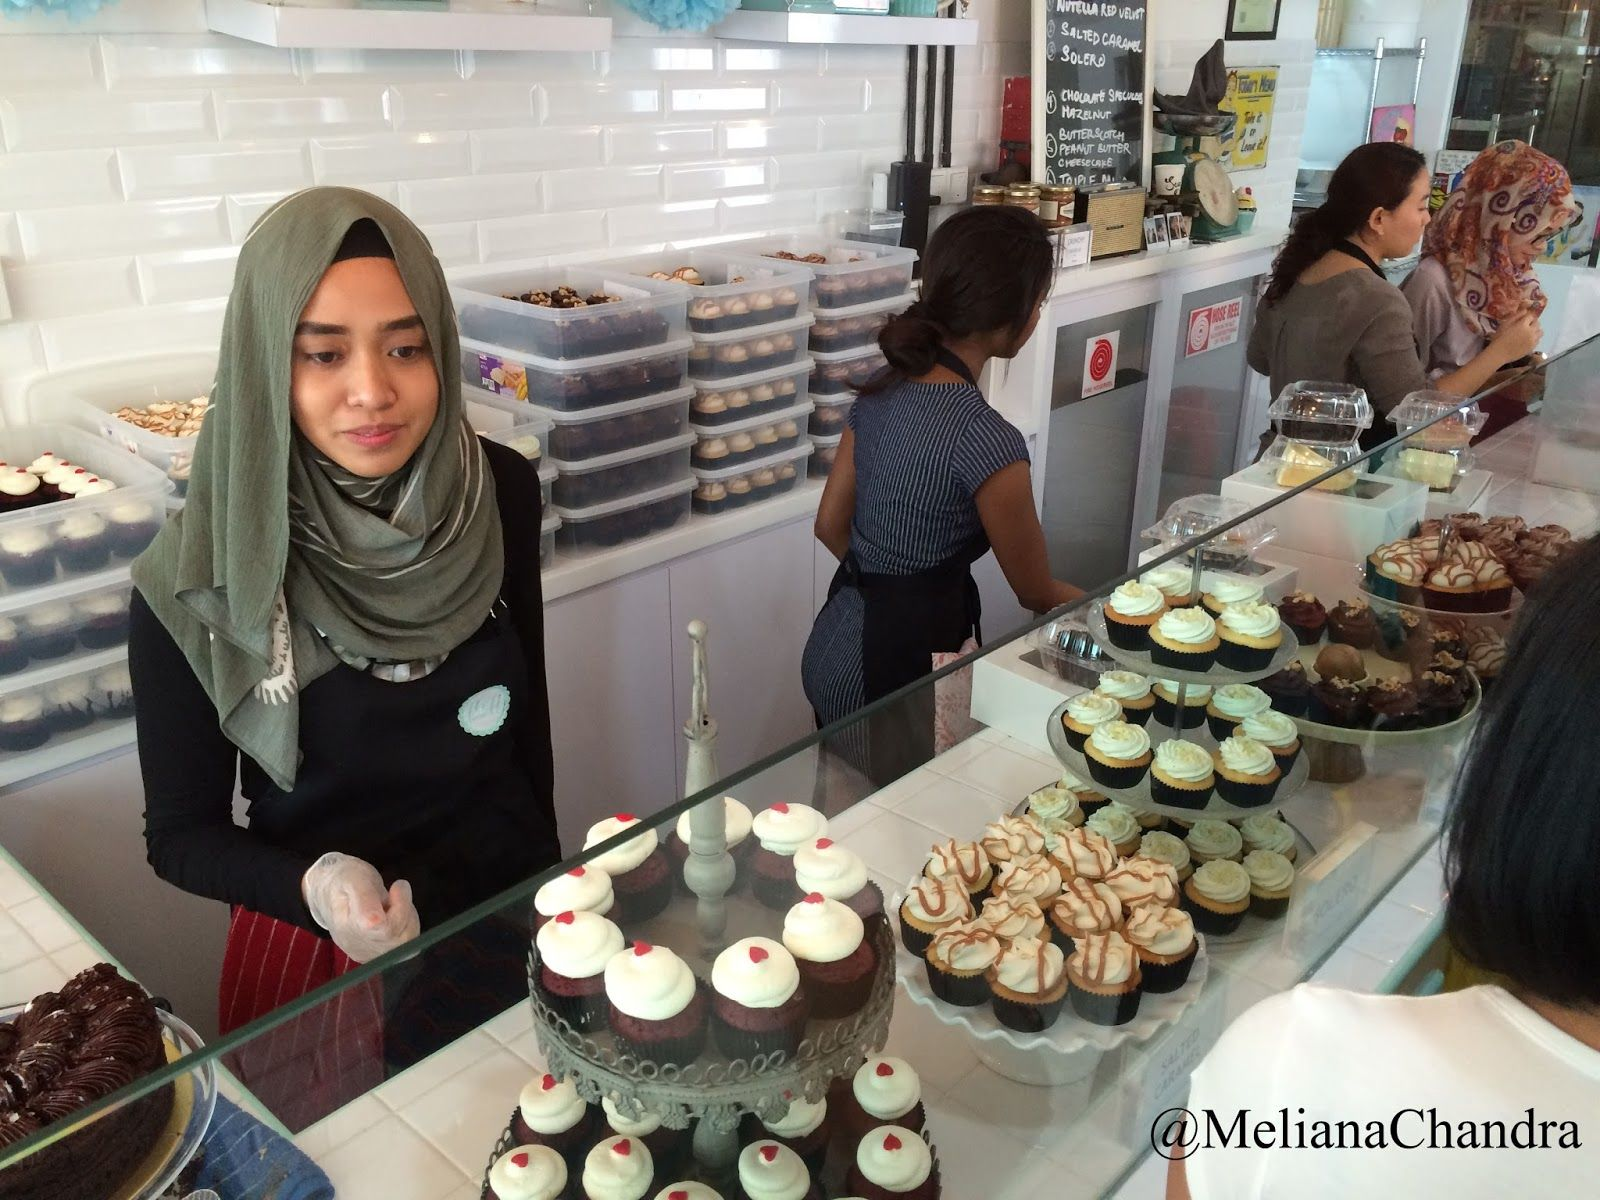 Delicious Cupcakes From Fluff Bakery Diary Of Meliana Chandra Food And Travel Lover Yummy Cupcakes Halal Recipes Bakery